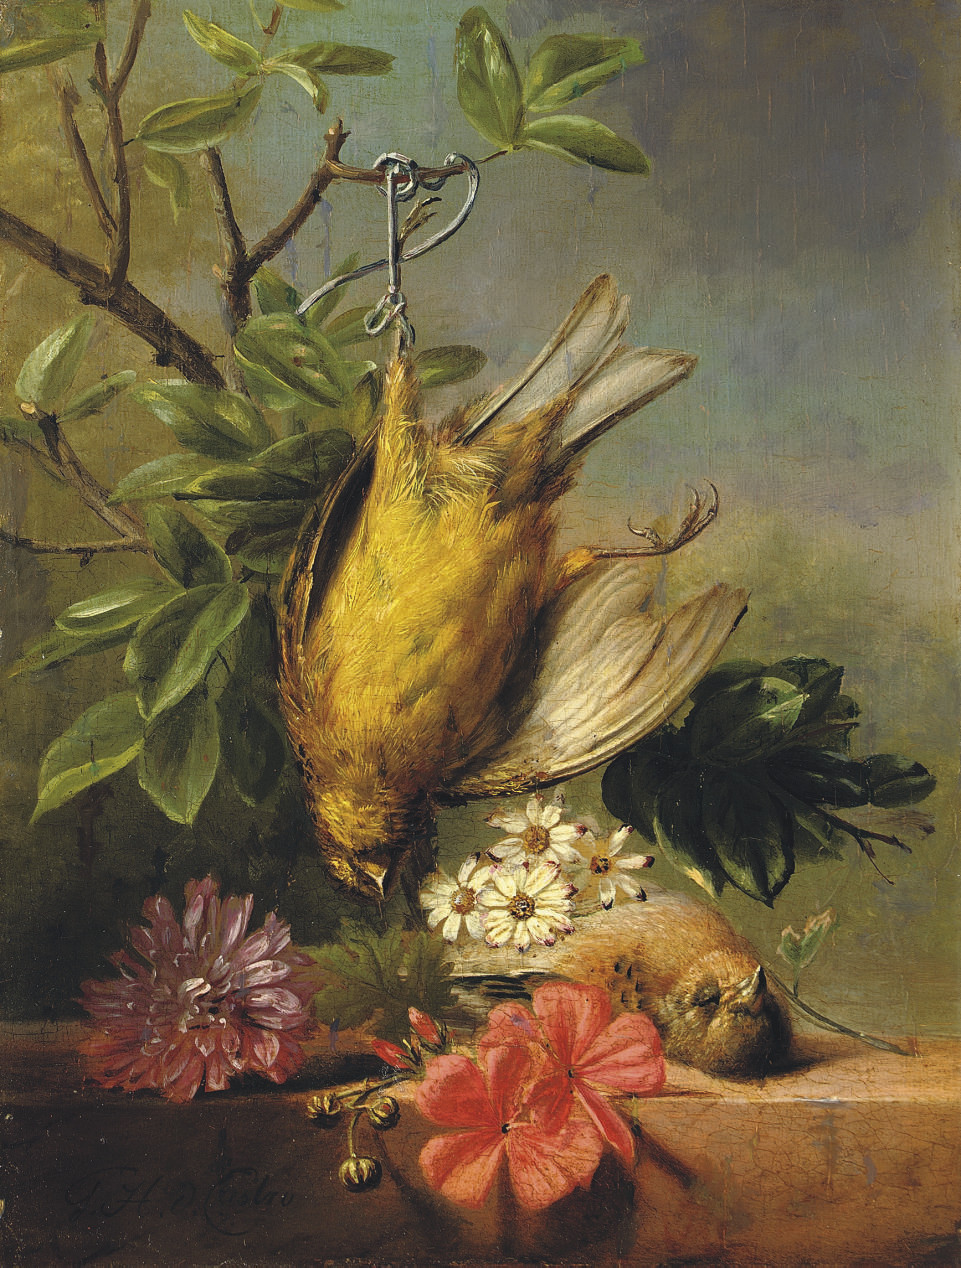 A still life with flowers and poultry